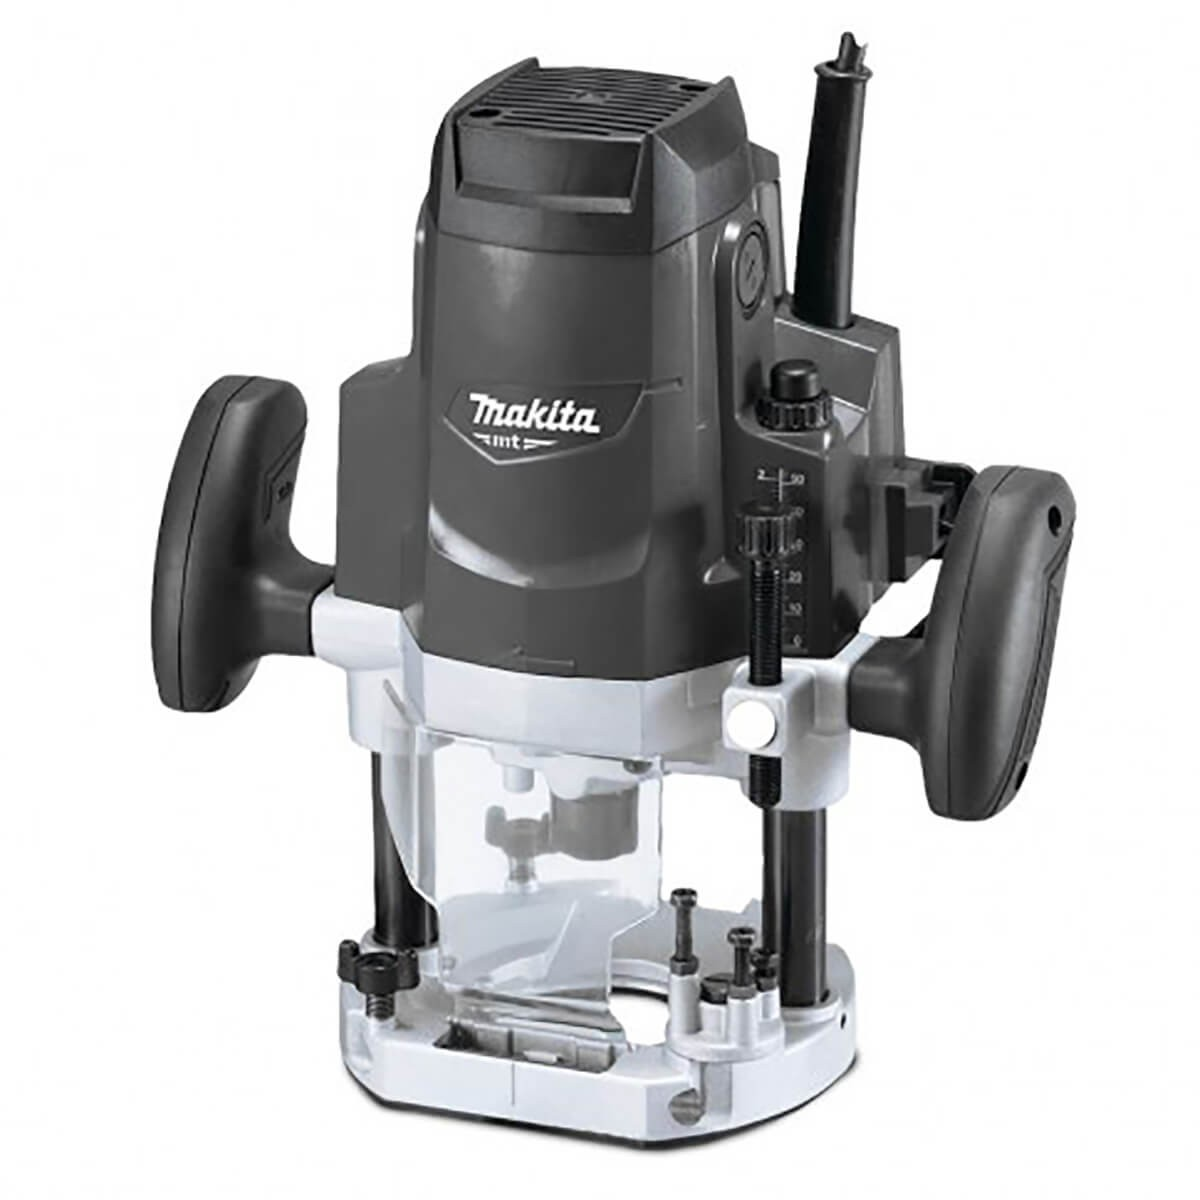 Makita MT Series 1,650W Router Plunge Fixed base Router Compact router M3600G